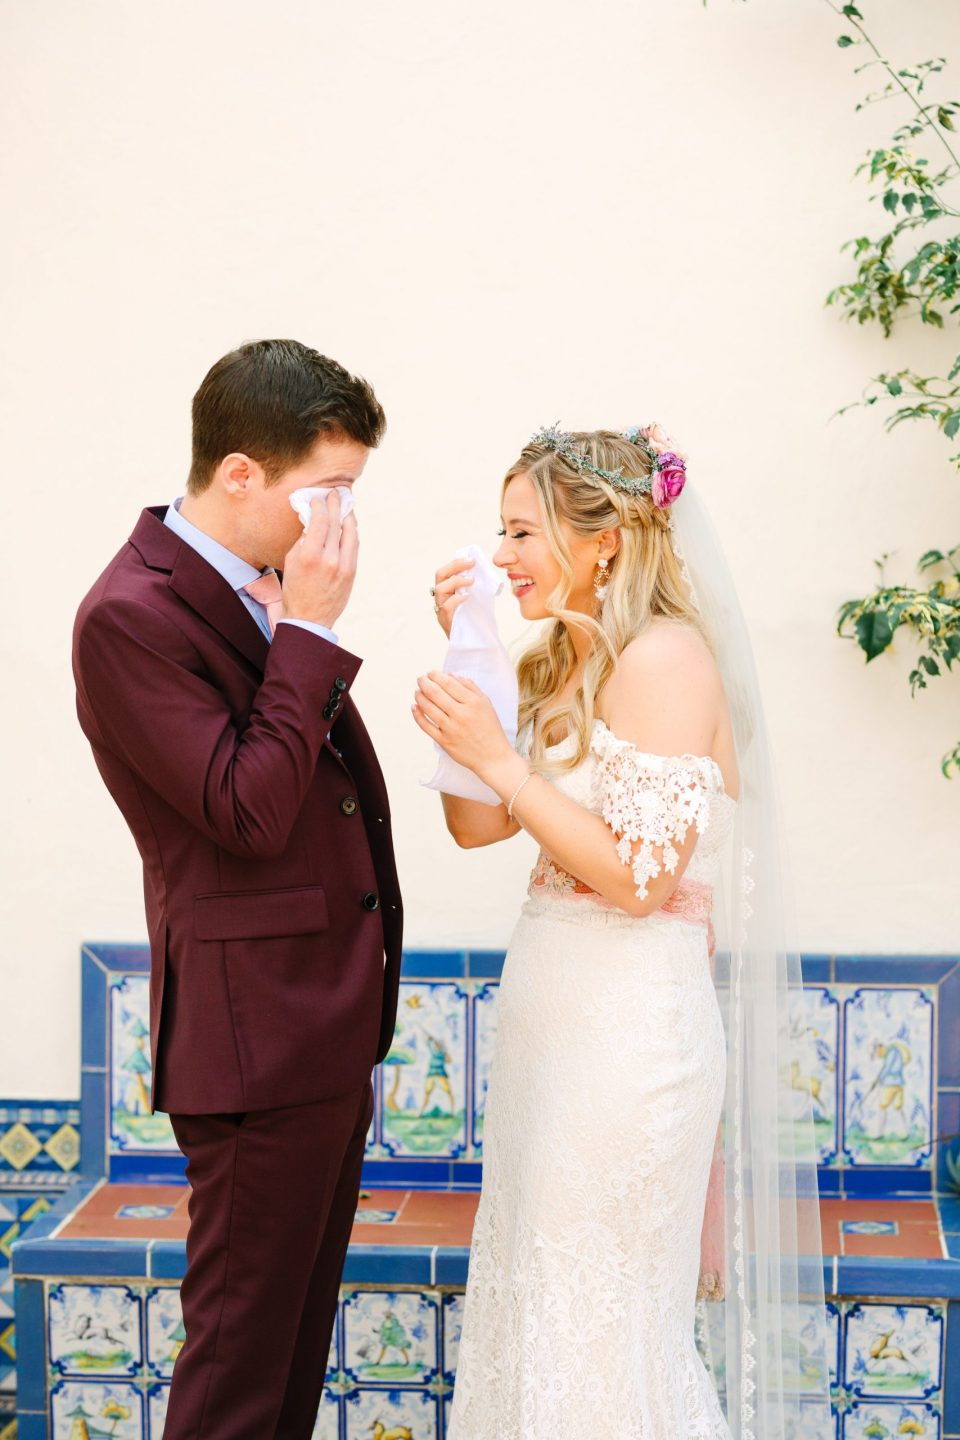 First look at wedding by Mary Costa Photography